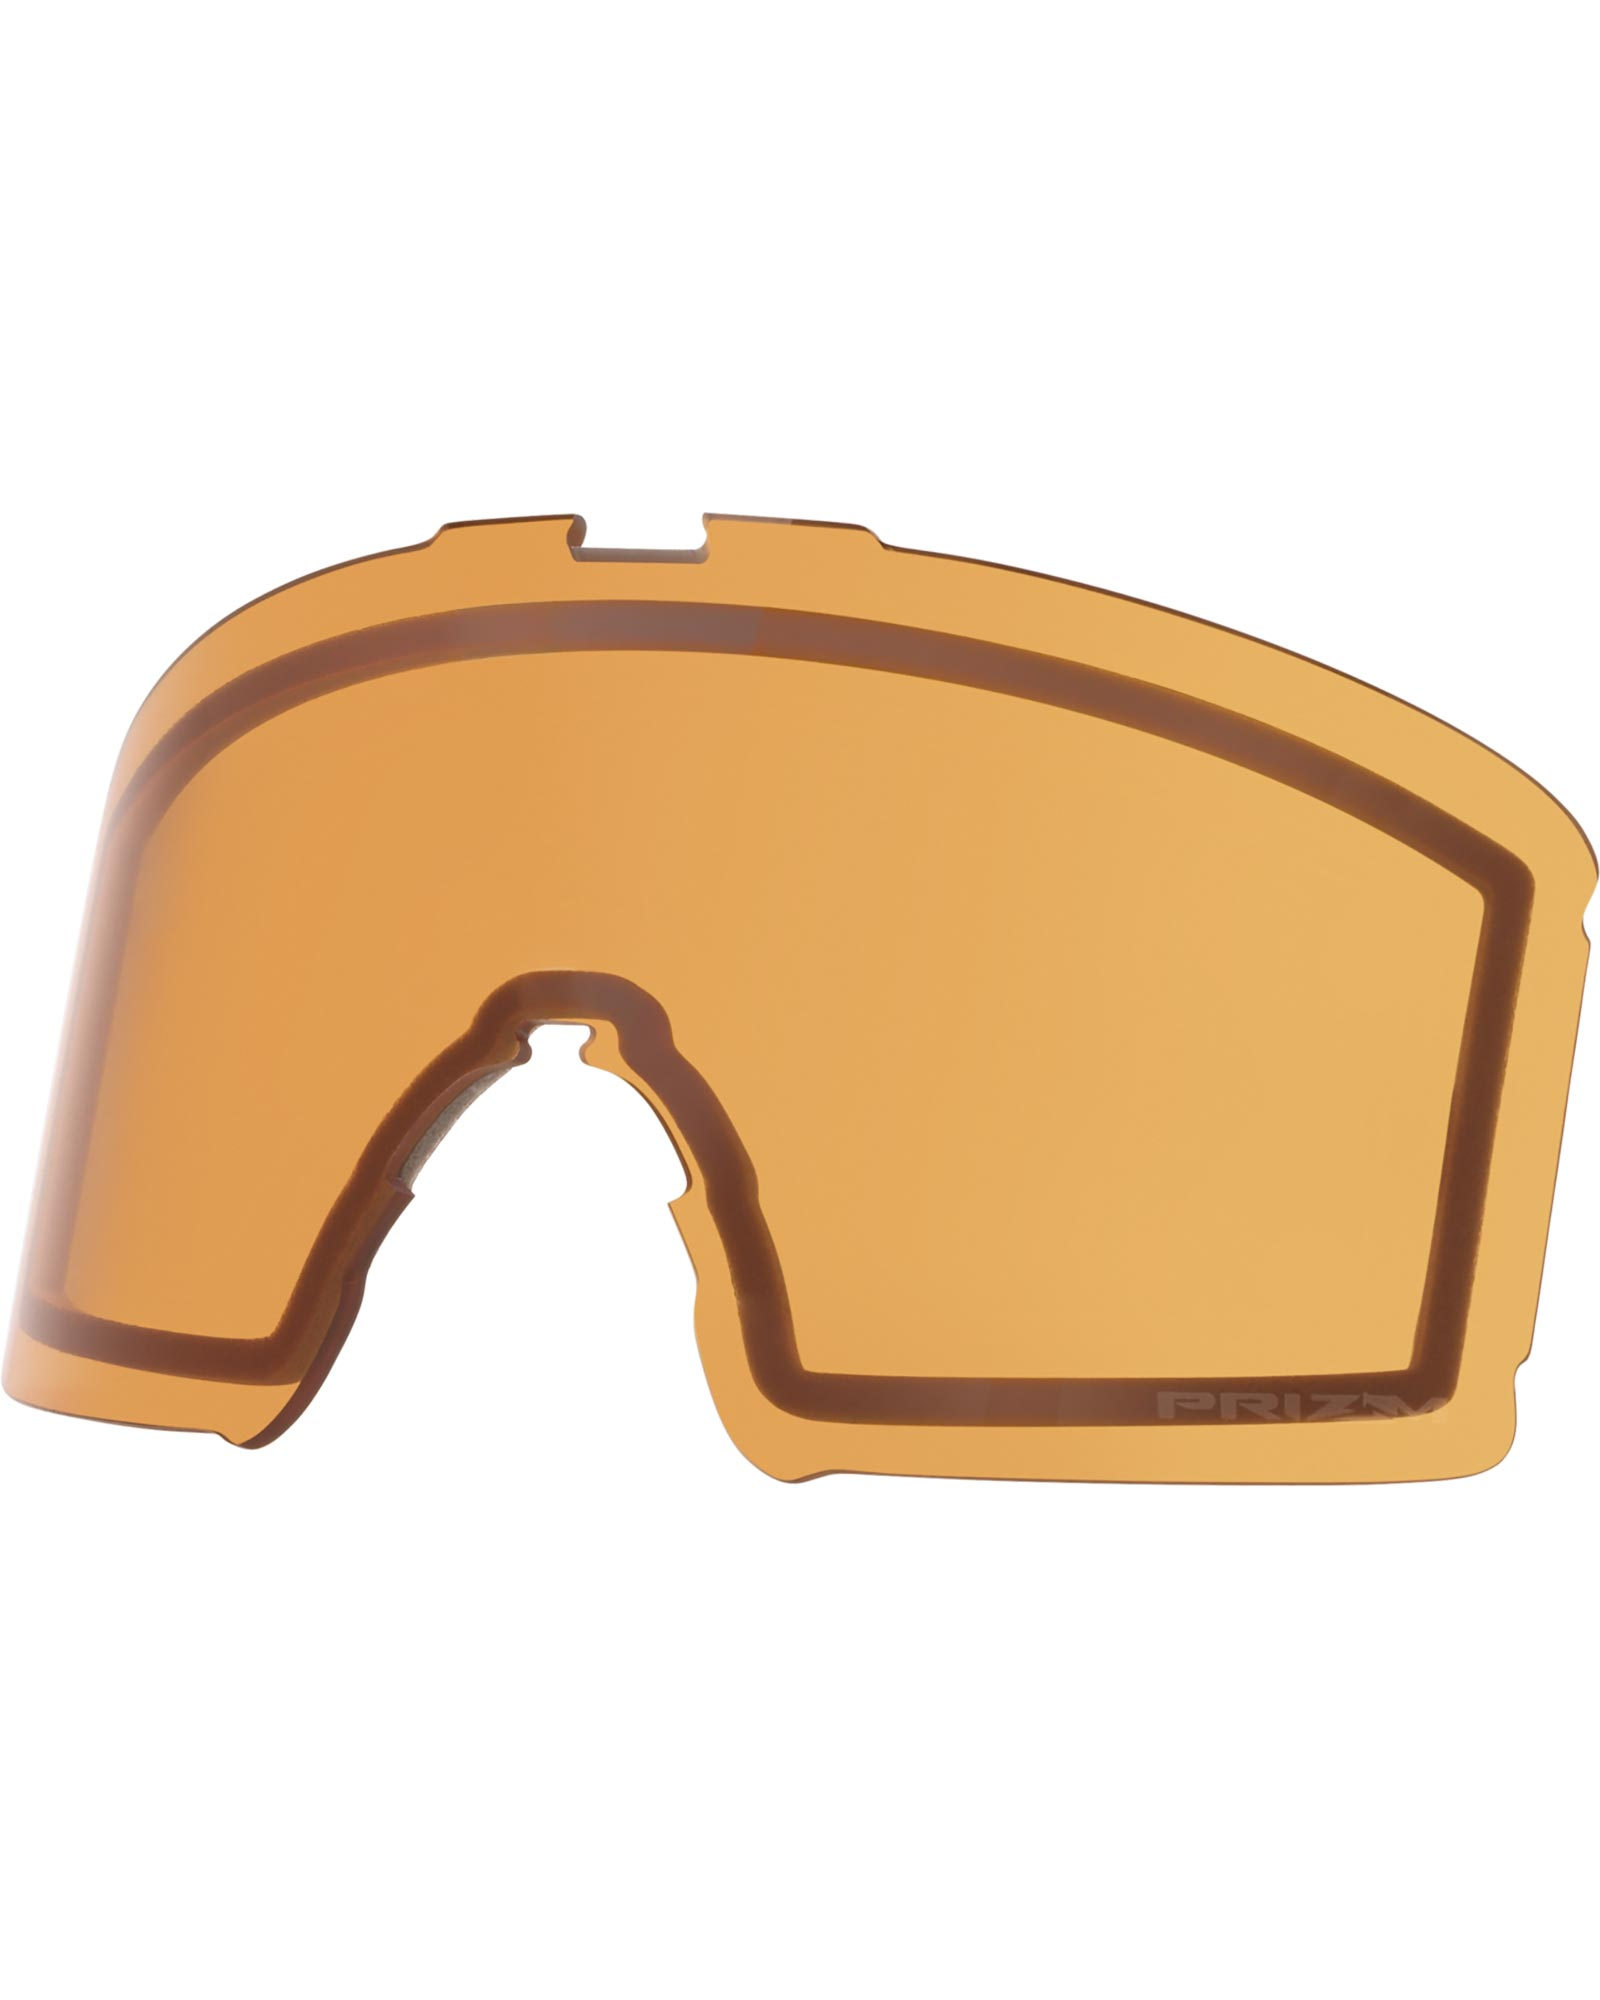 Oakley Line Miner XM Lens Prizm Persimmon Goggle Lens 2020 / 2021 0